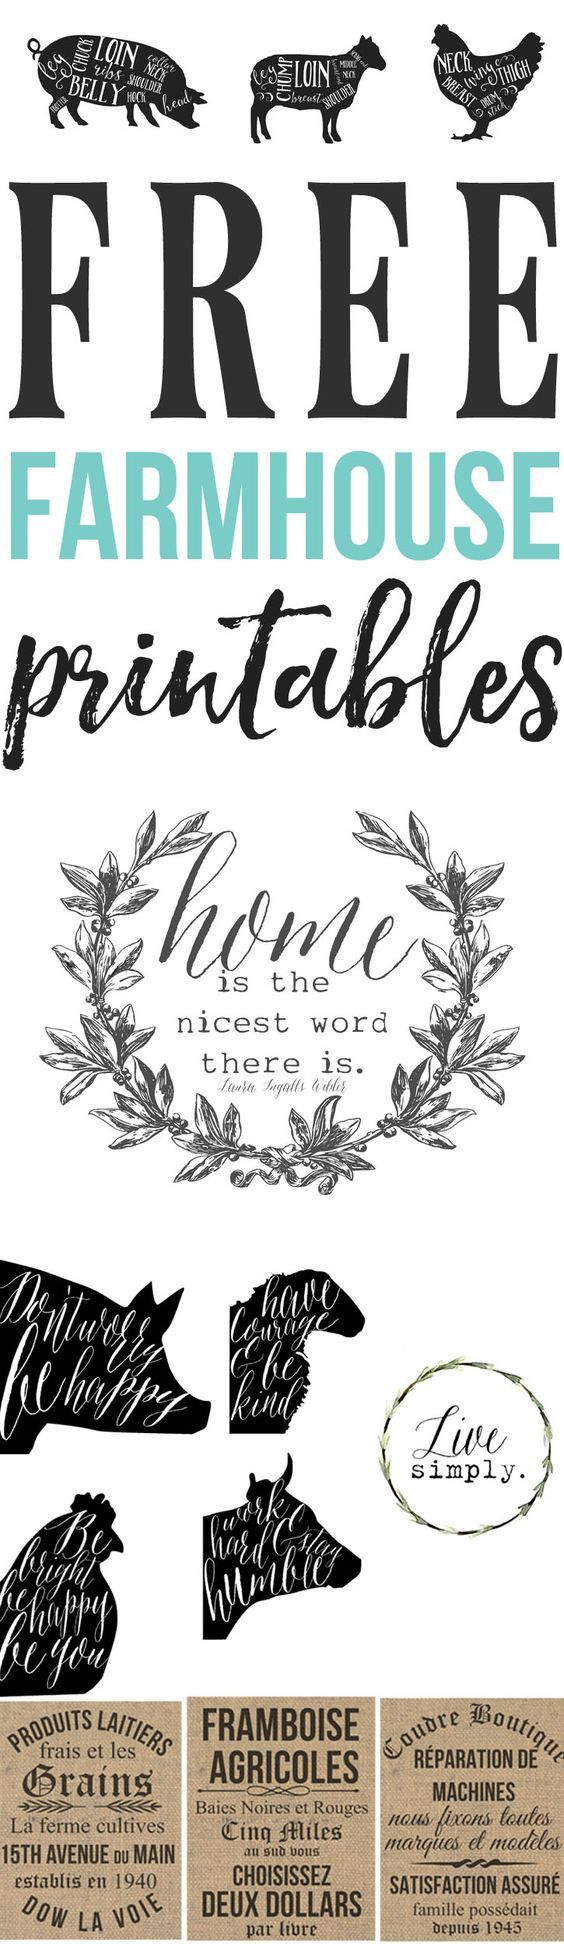 Free Farmhouse Printables For Your Home — The Mountain View Cottage: